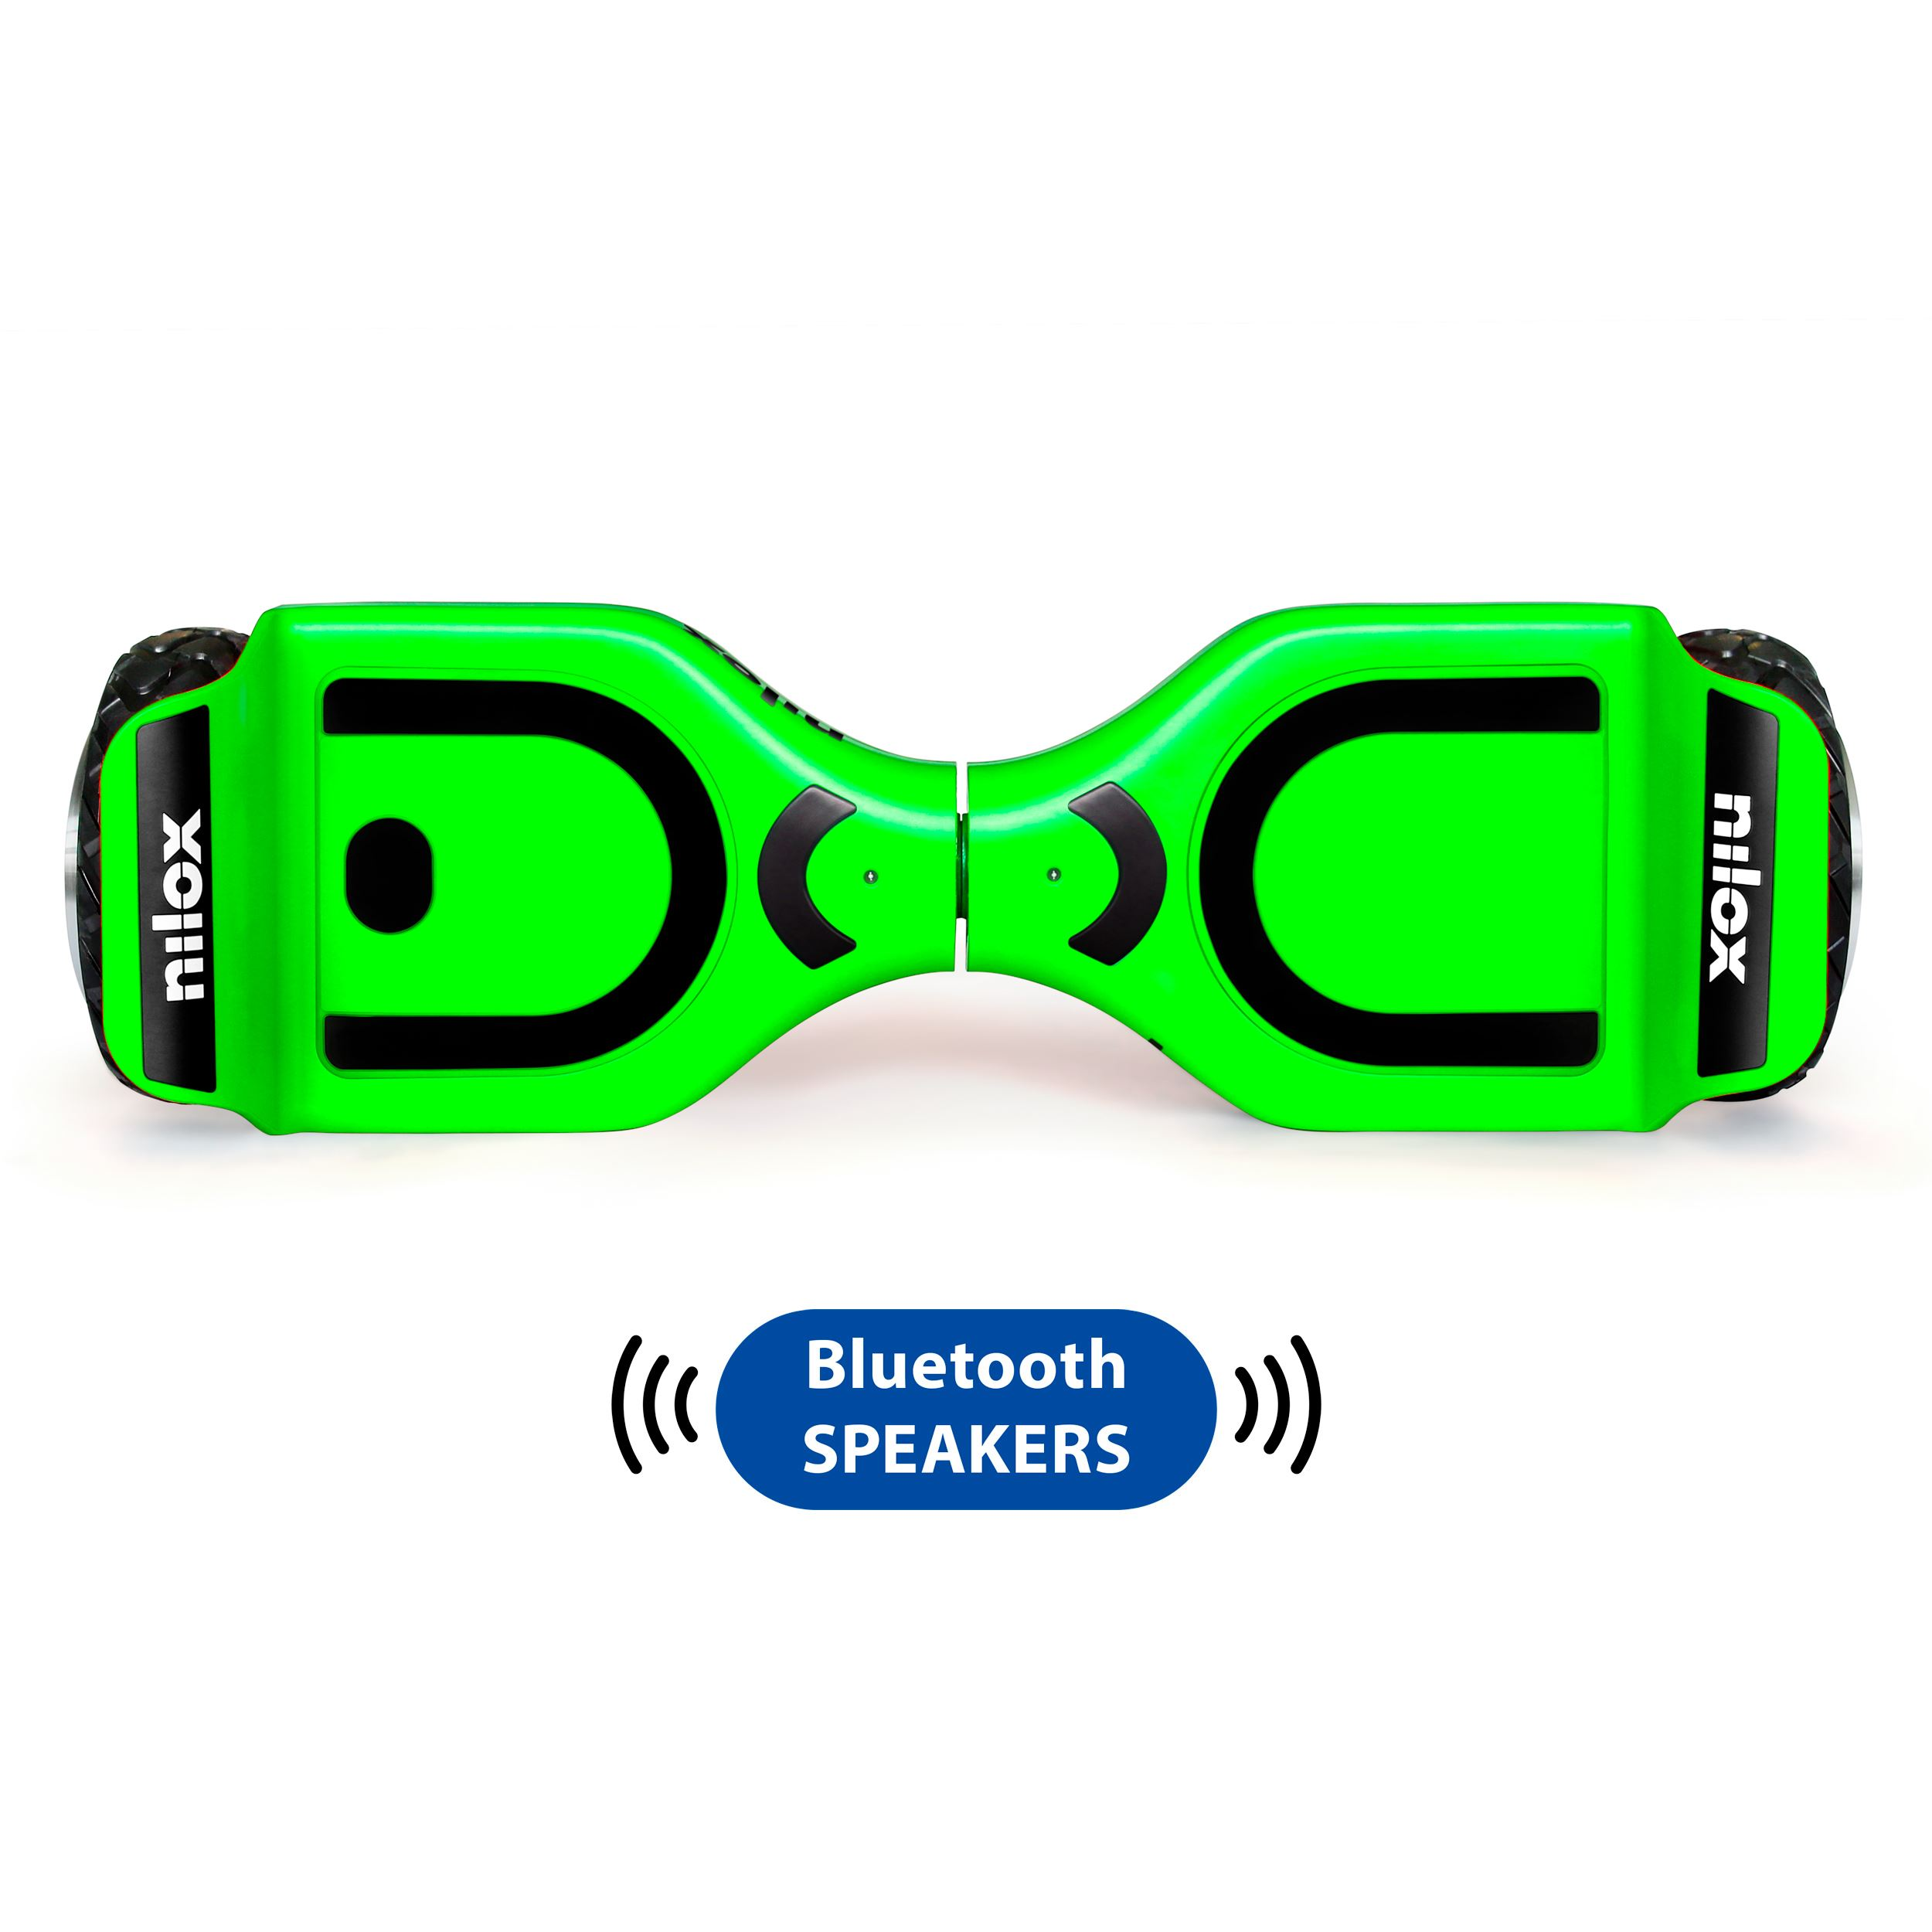 doc-2-hoverboard-plus-lime-green-30nxbk65bwn06-505307-hd.jpg